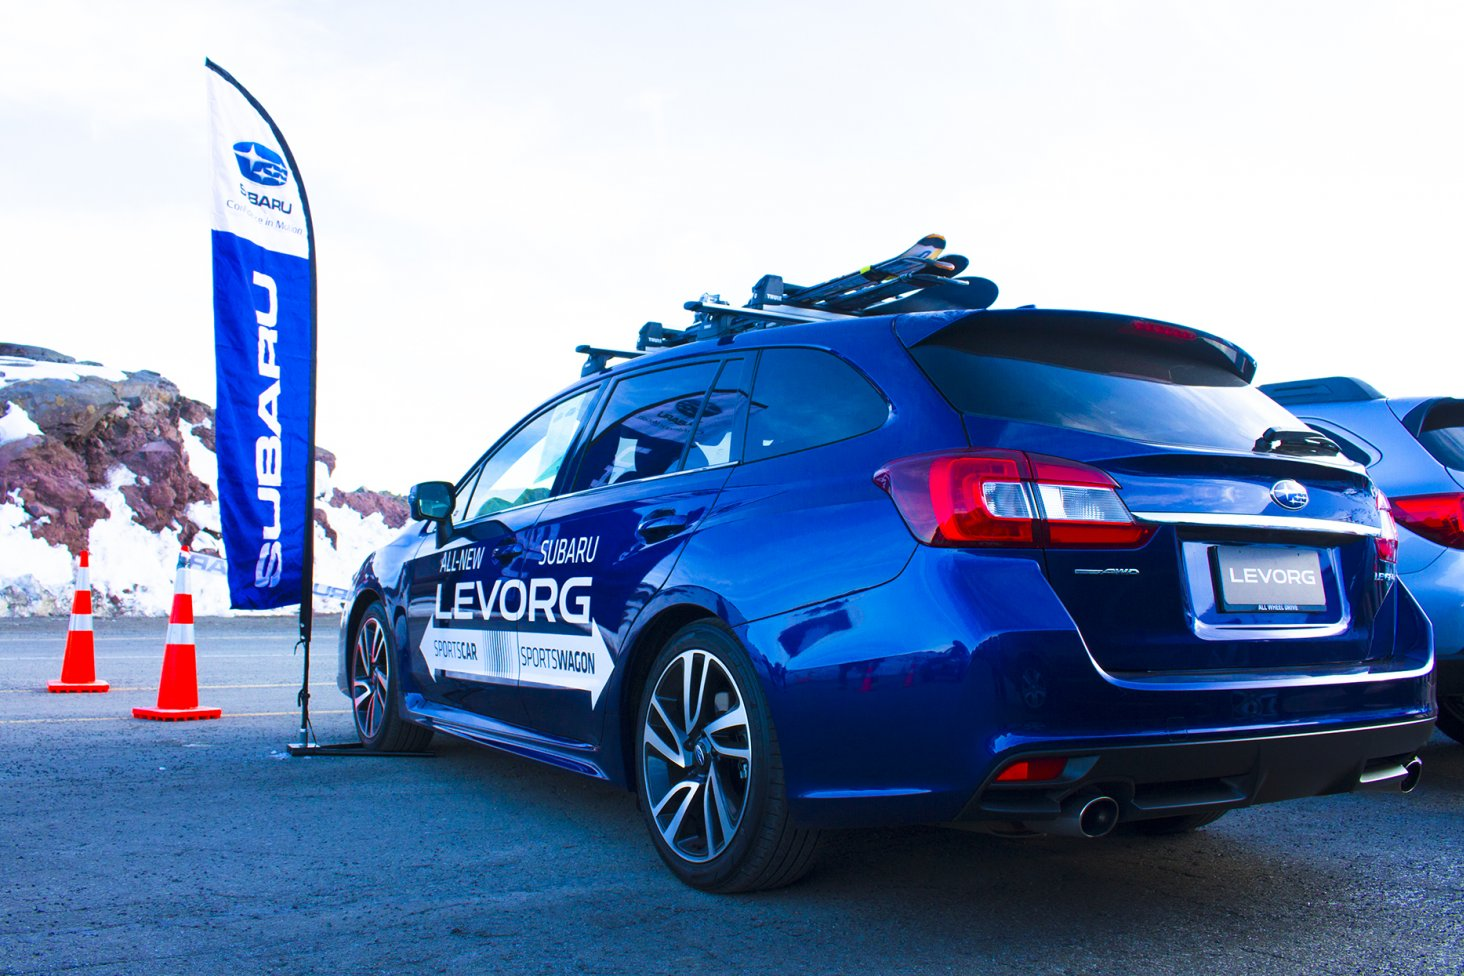 The Subaru Levorg at the 2016 Top Weekend at Turoa.